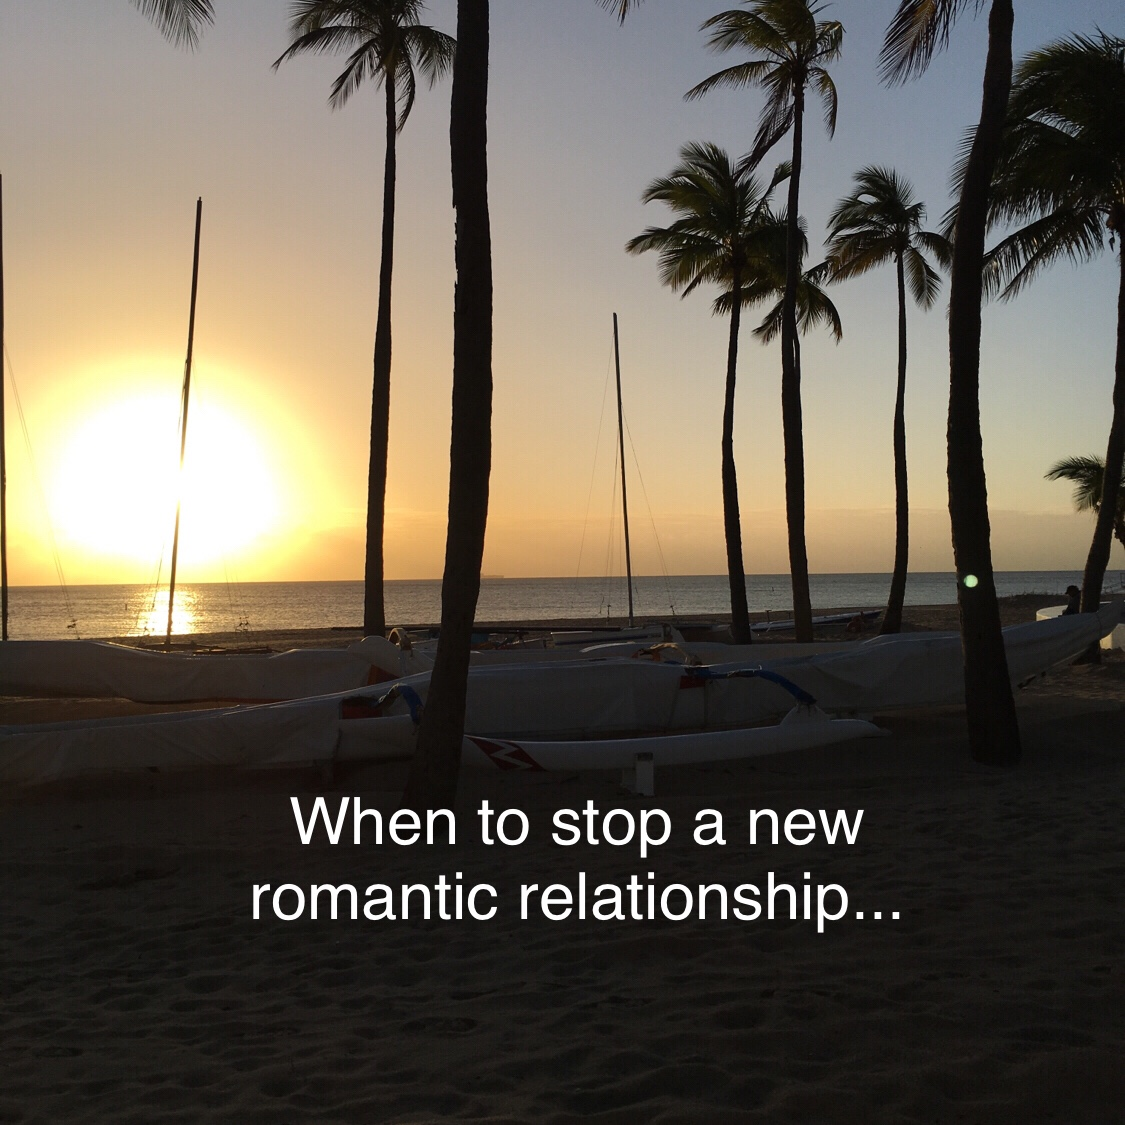 When to stop a new romantic relationship…